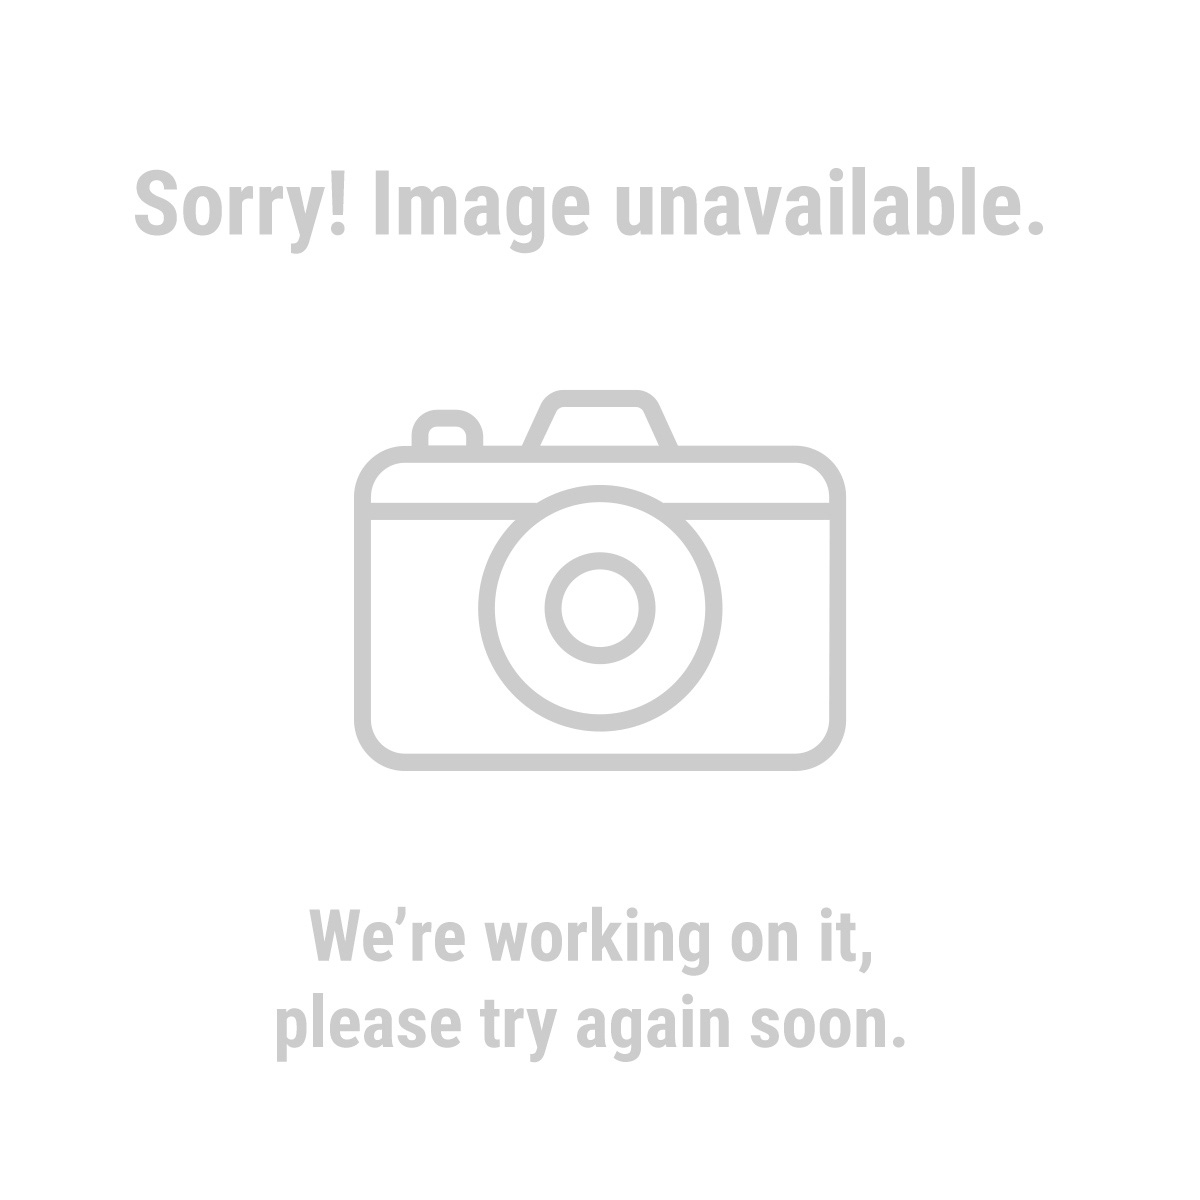 Predator Generators 63088 8750 Peak/7000 Running Watts, 13 HP  (420cc) Generator CARB